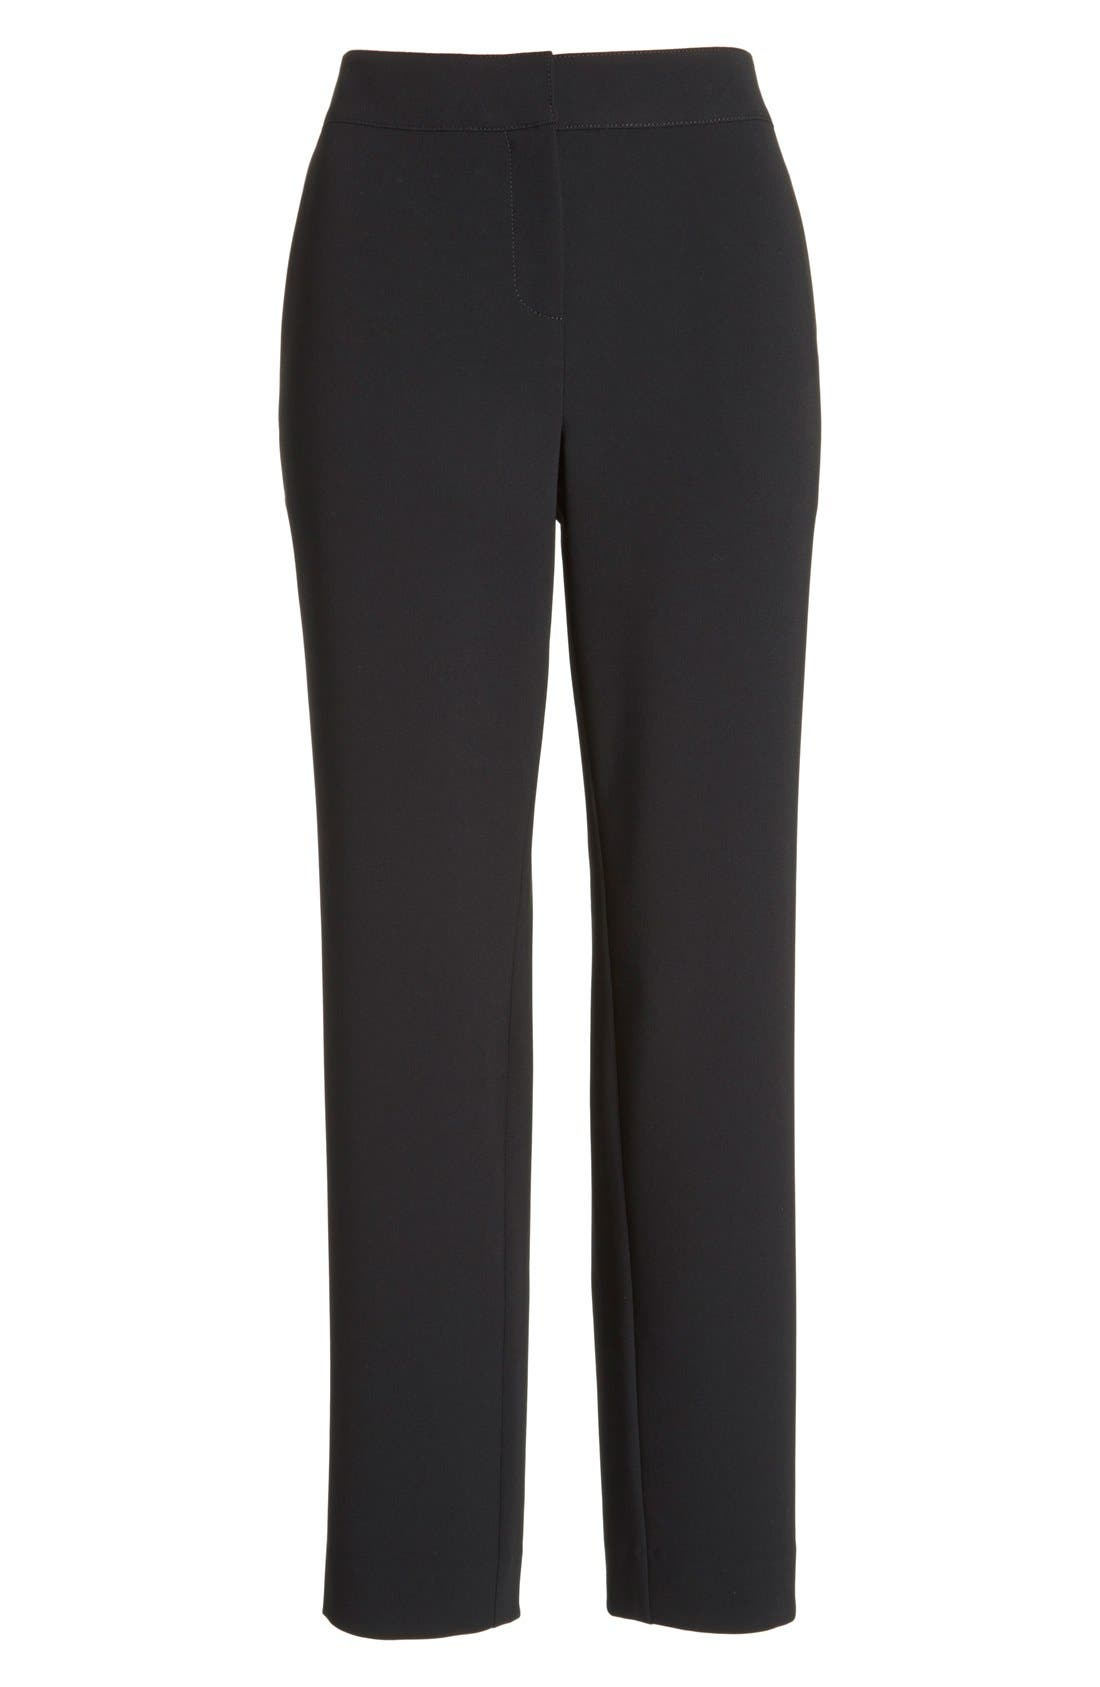 'Emma' Crop Crepe Marocain Pants,                             Alternate thumbnail 4, color,                             Caviar